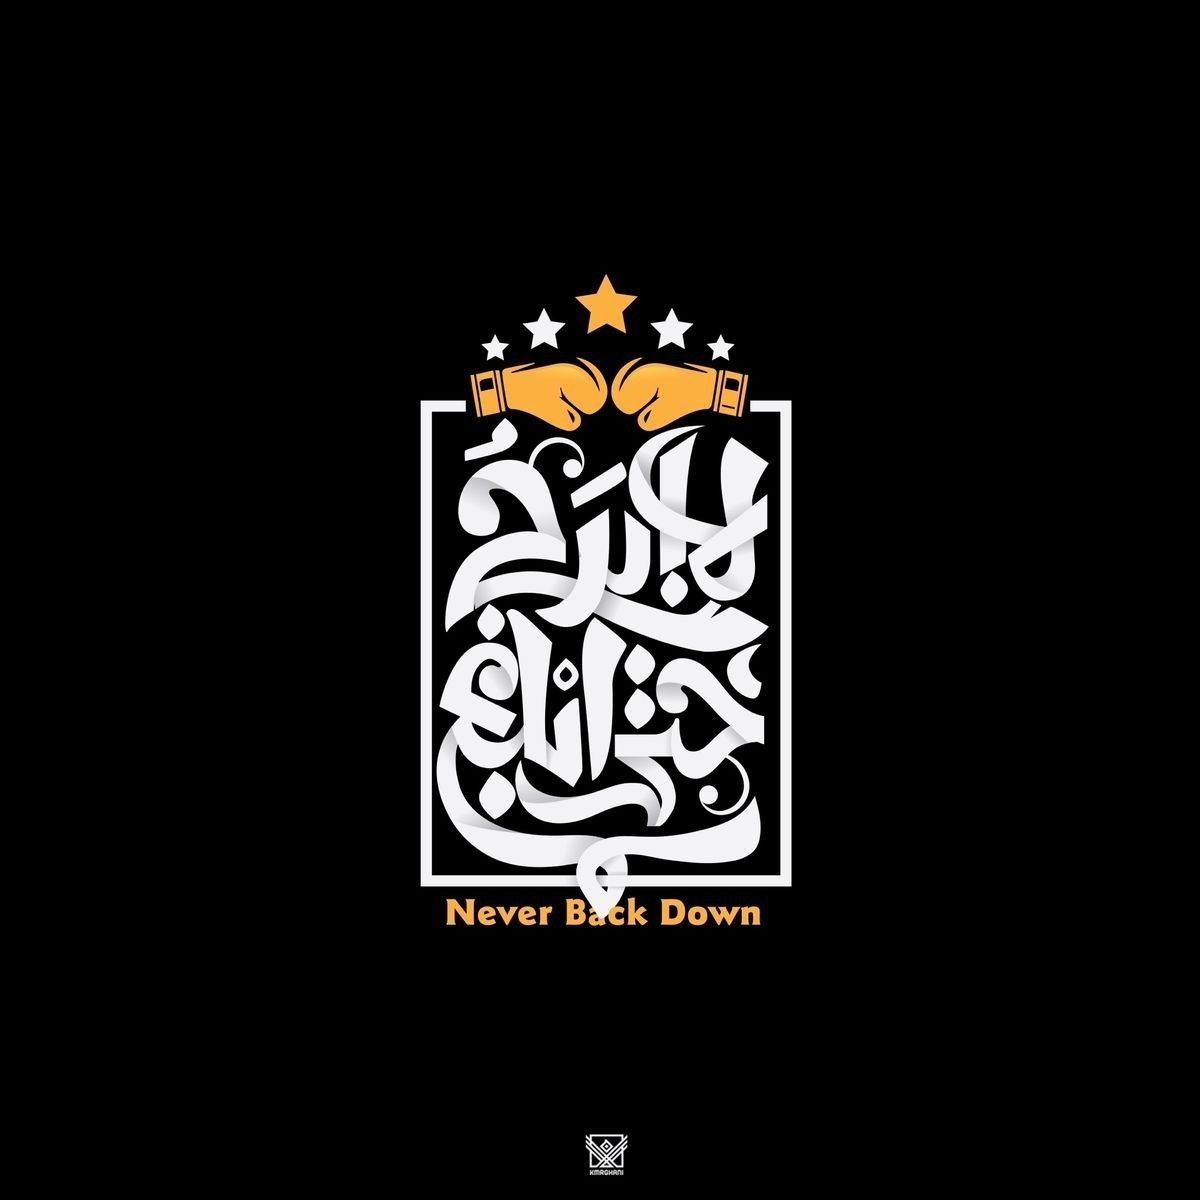 Pin By Shahad Alharbi On Word Design Word Drawings Calligraphy Words Arabic Calligraphy Art